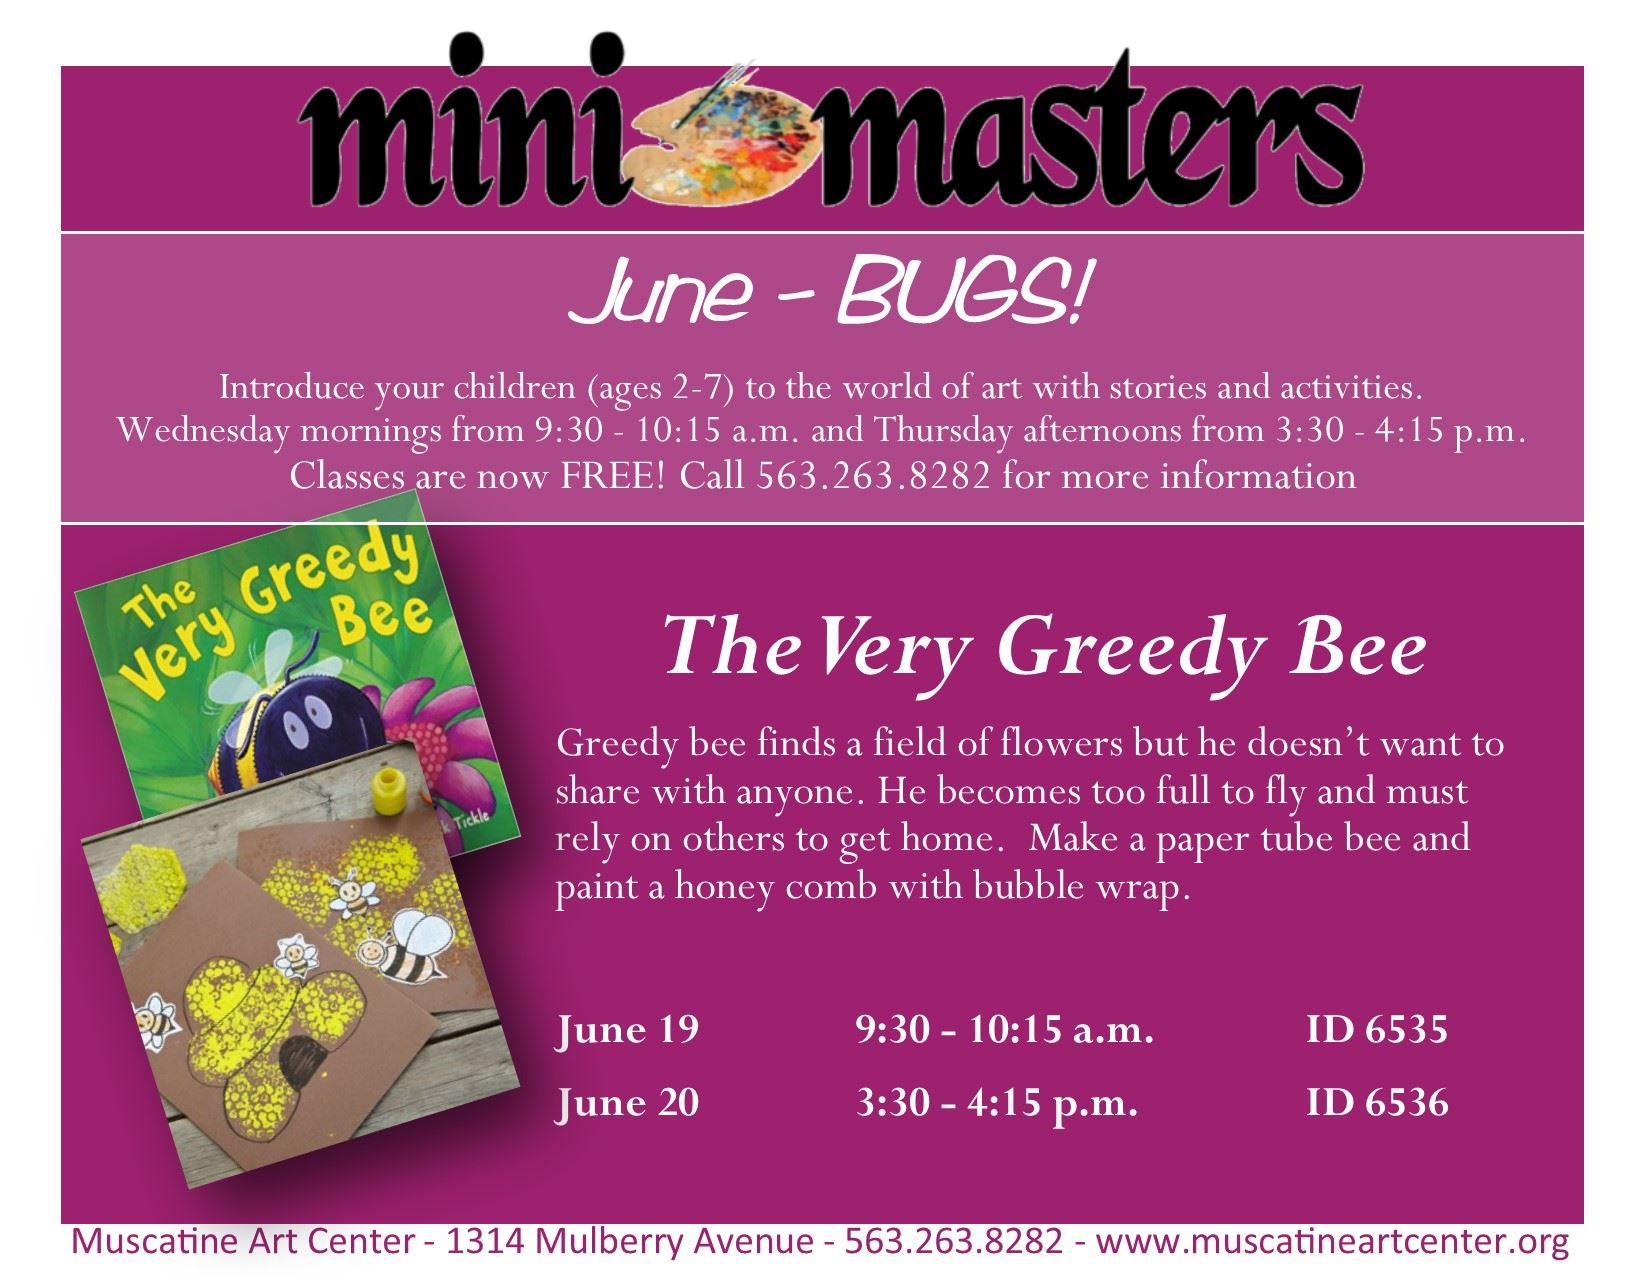 June 19-20  - The Very Greedy Bee - mini masters